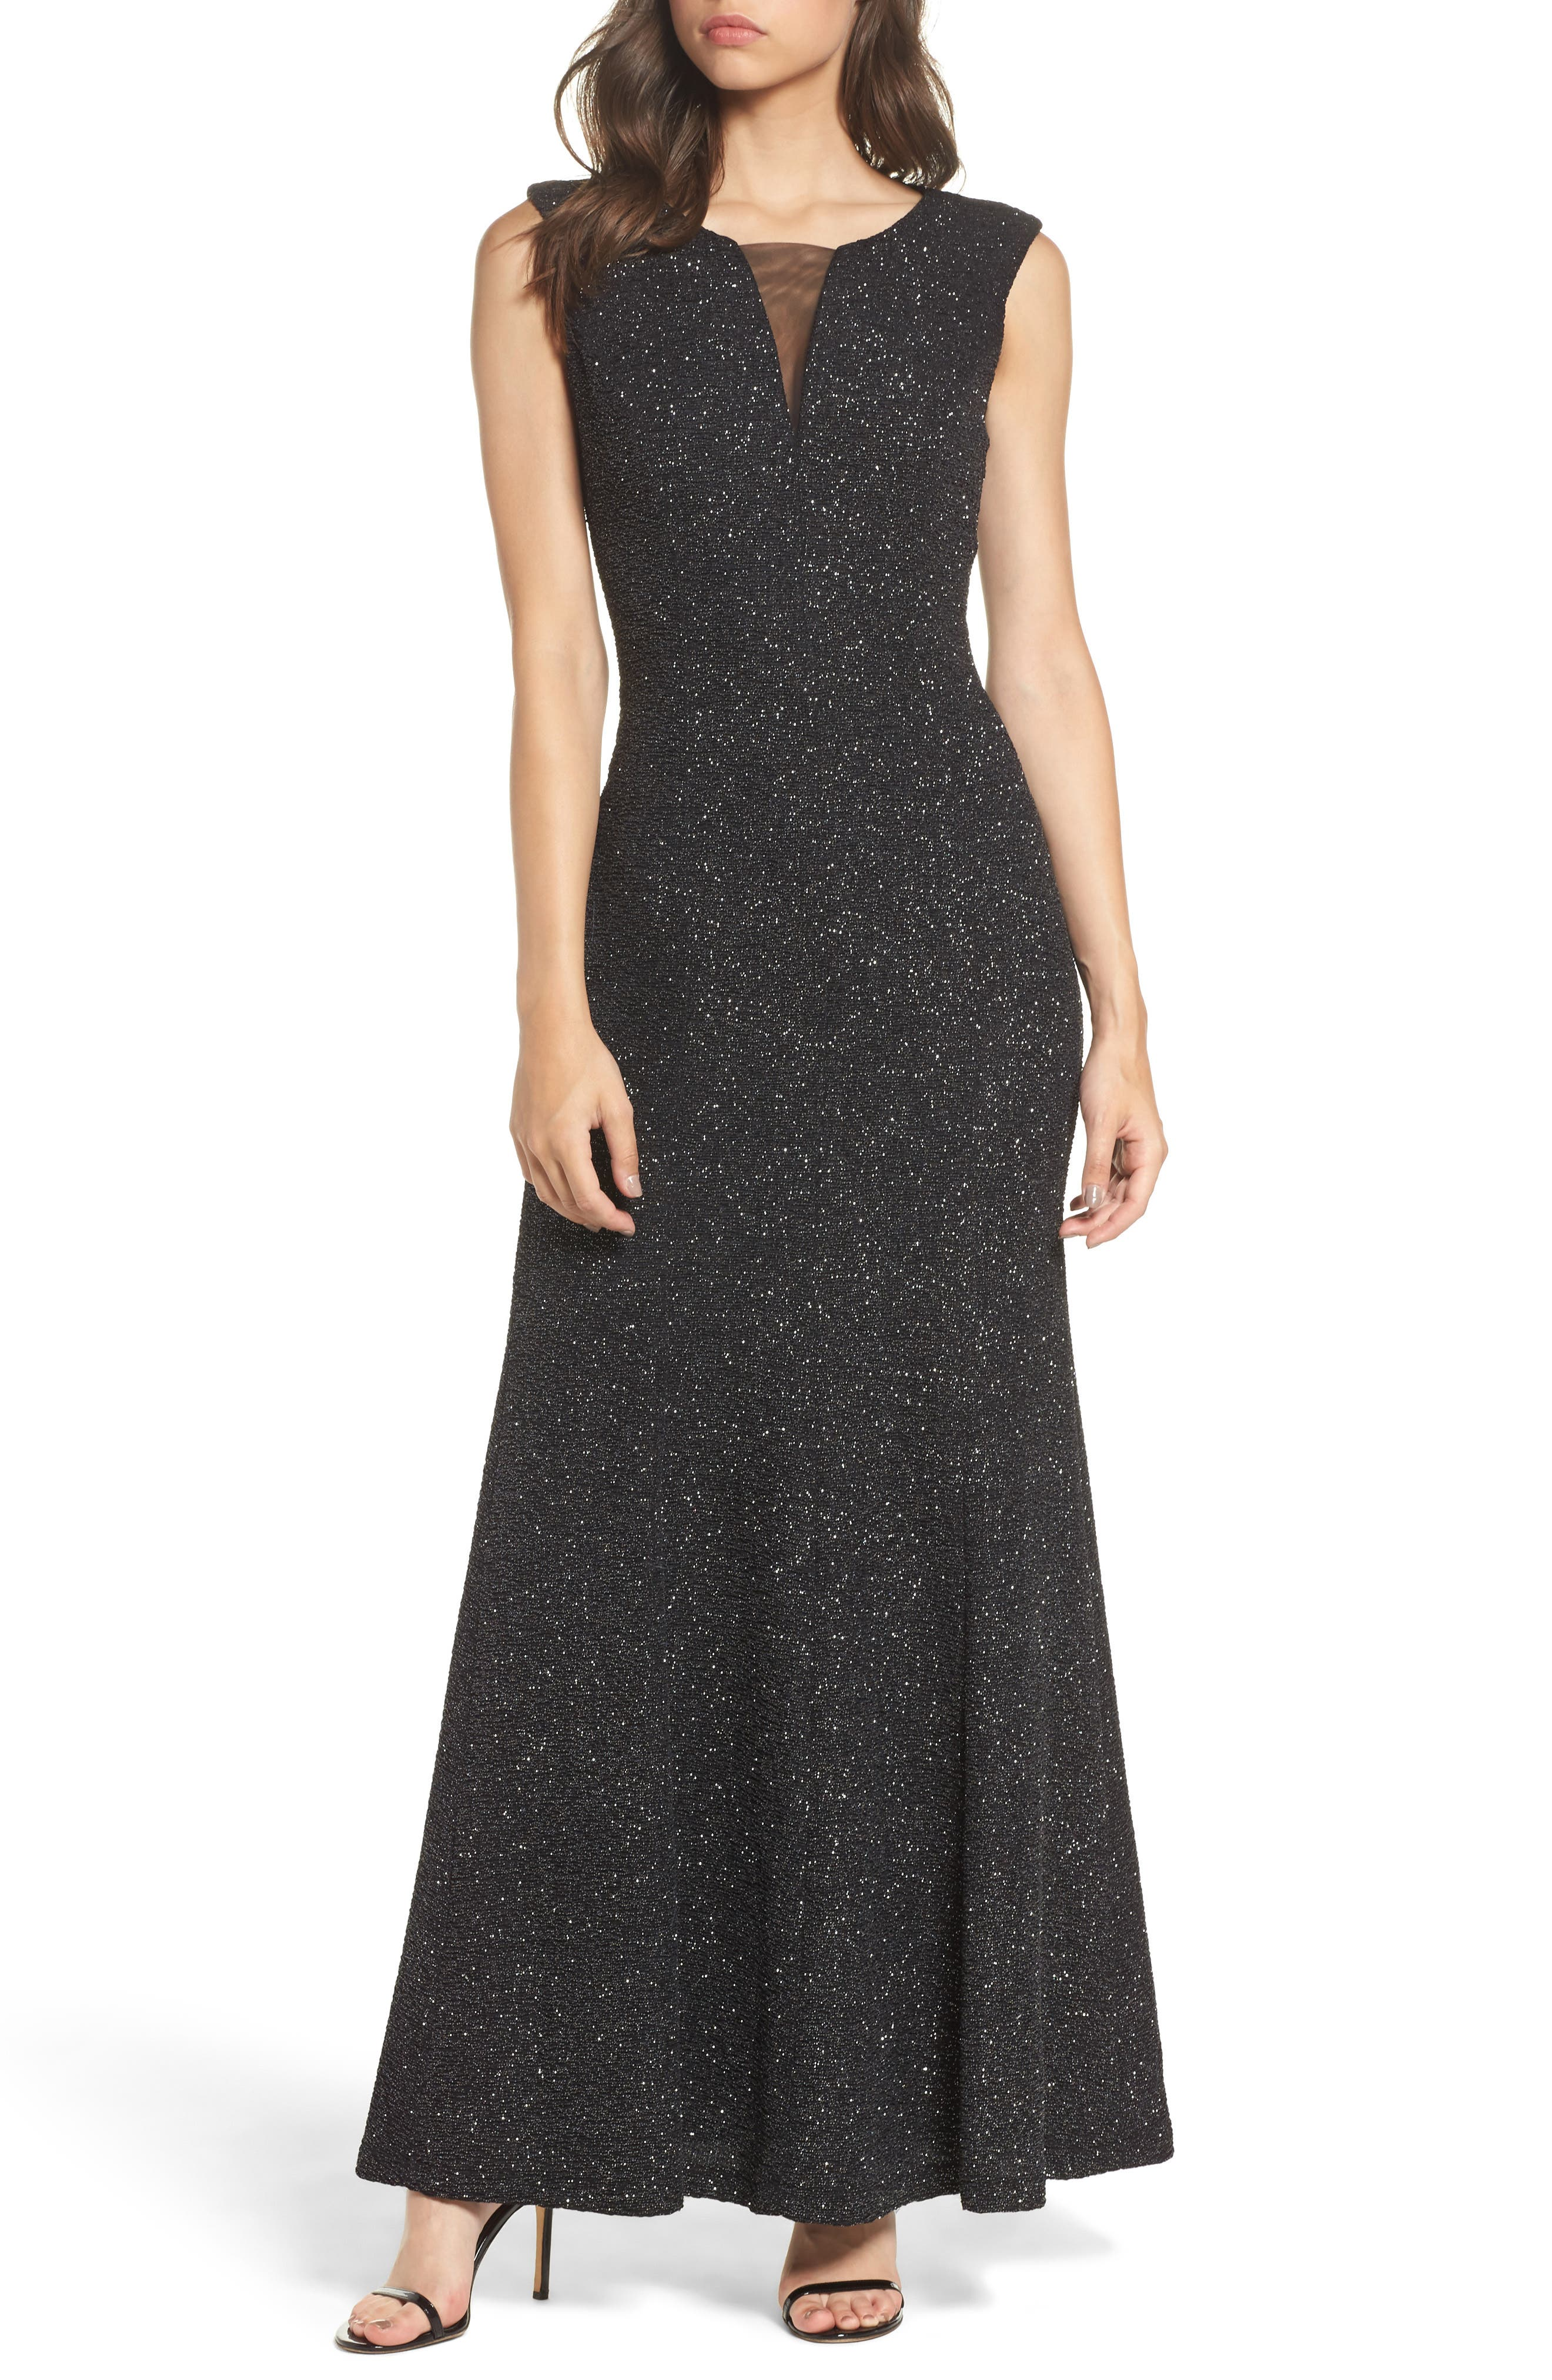 Glitter Knit Gown,                             Main thumbnail 1, color,                             Black/ Silver